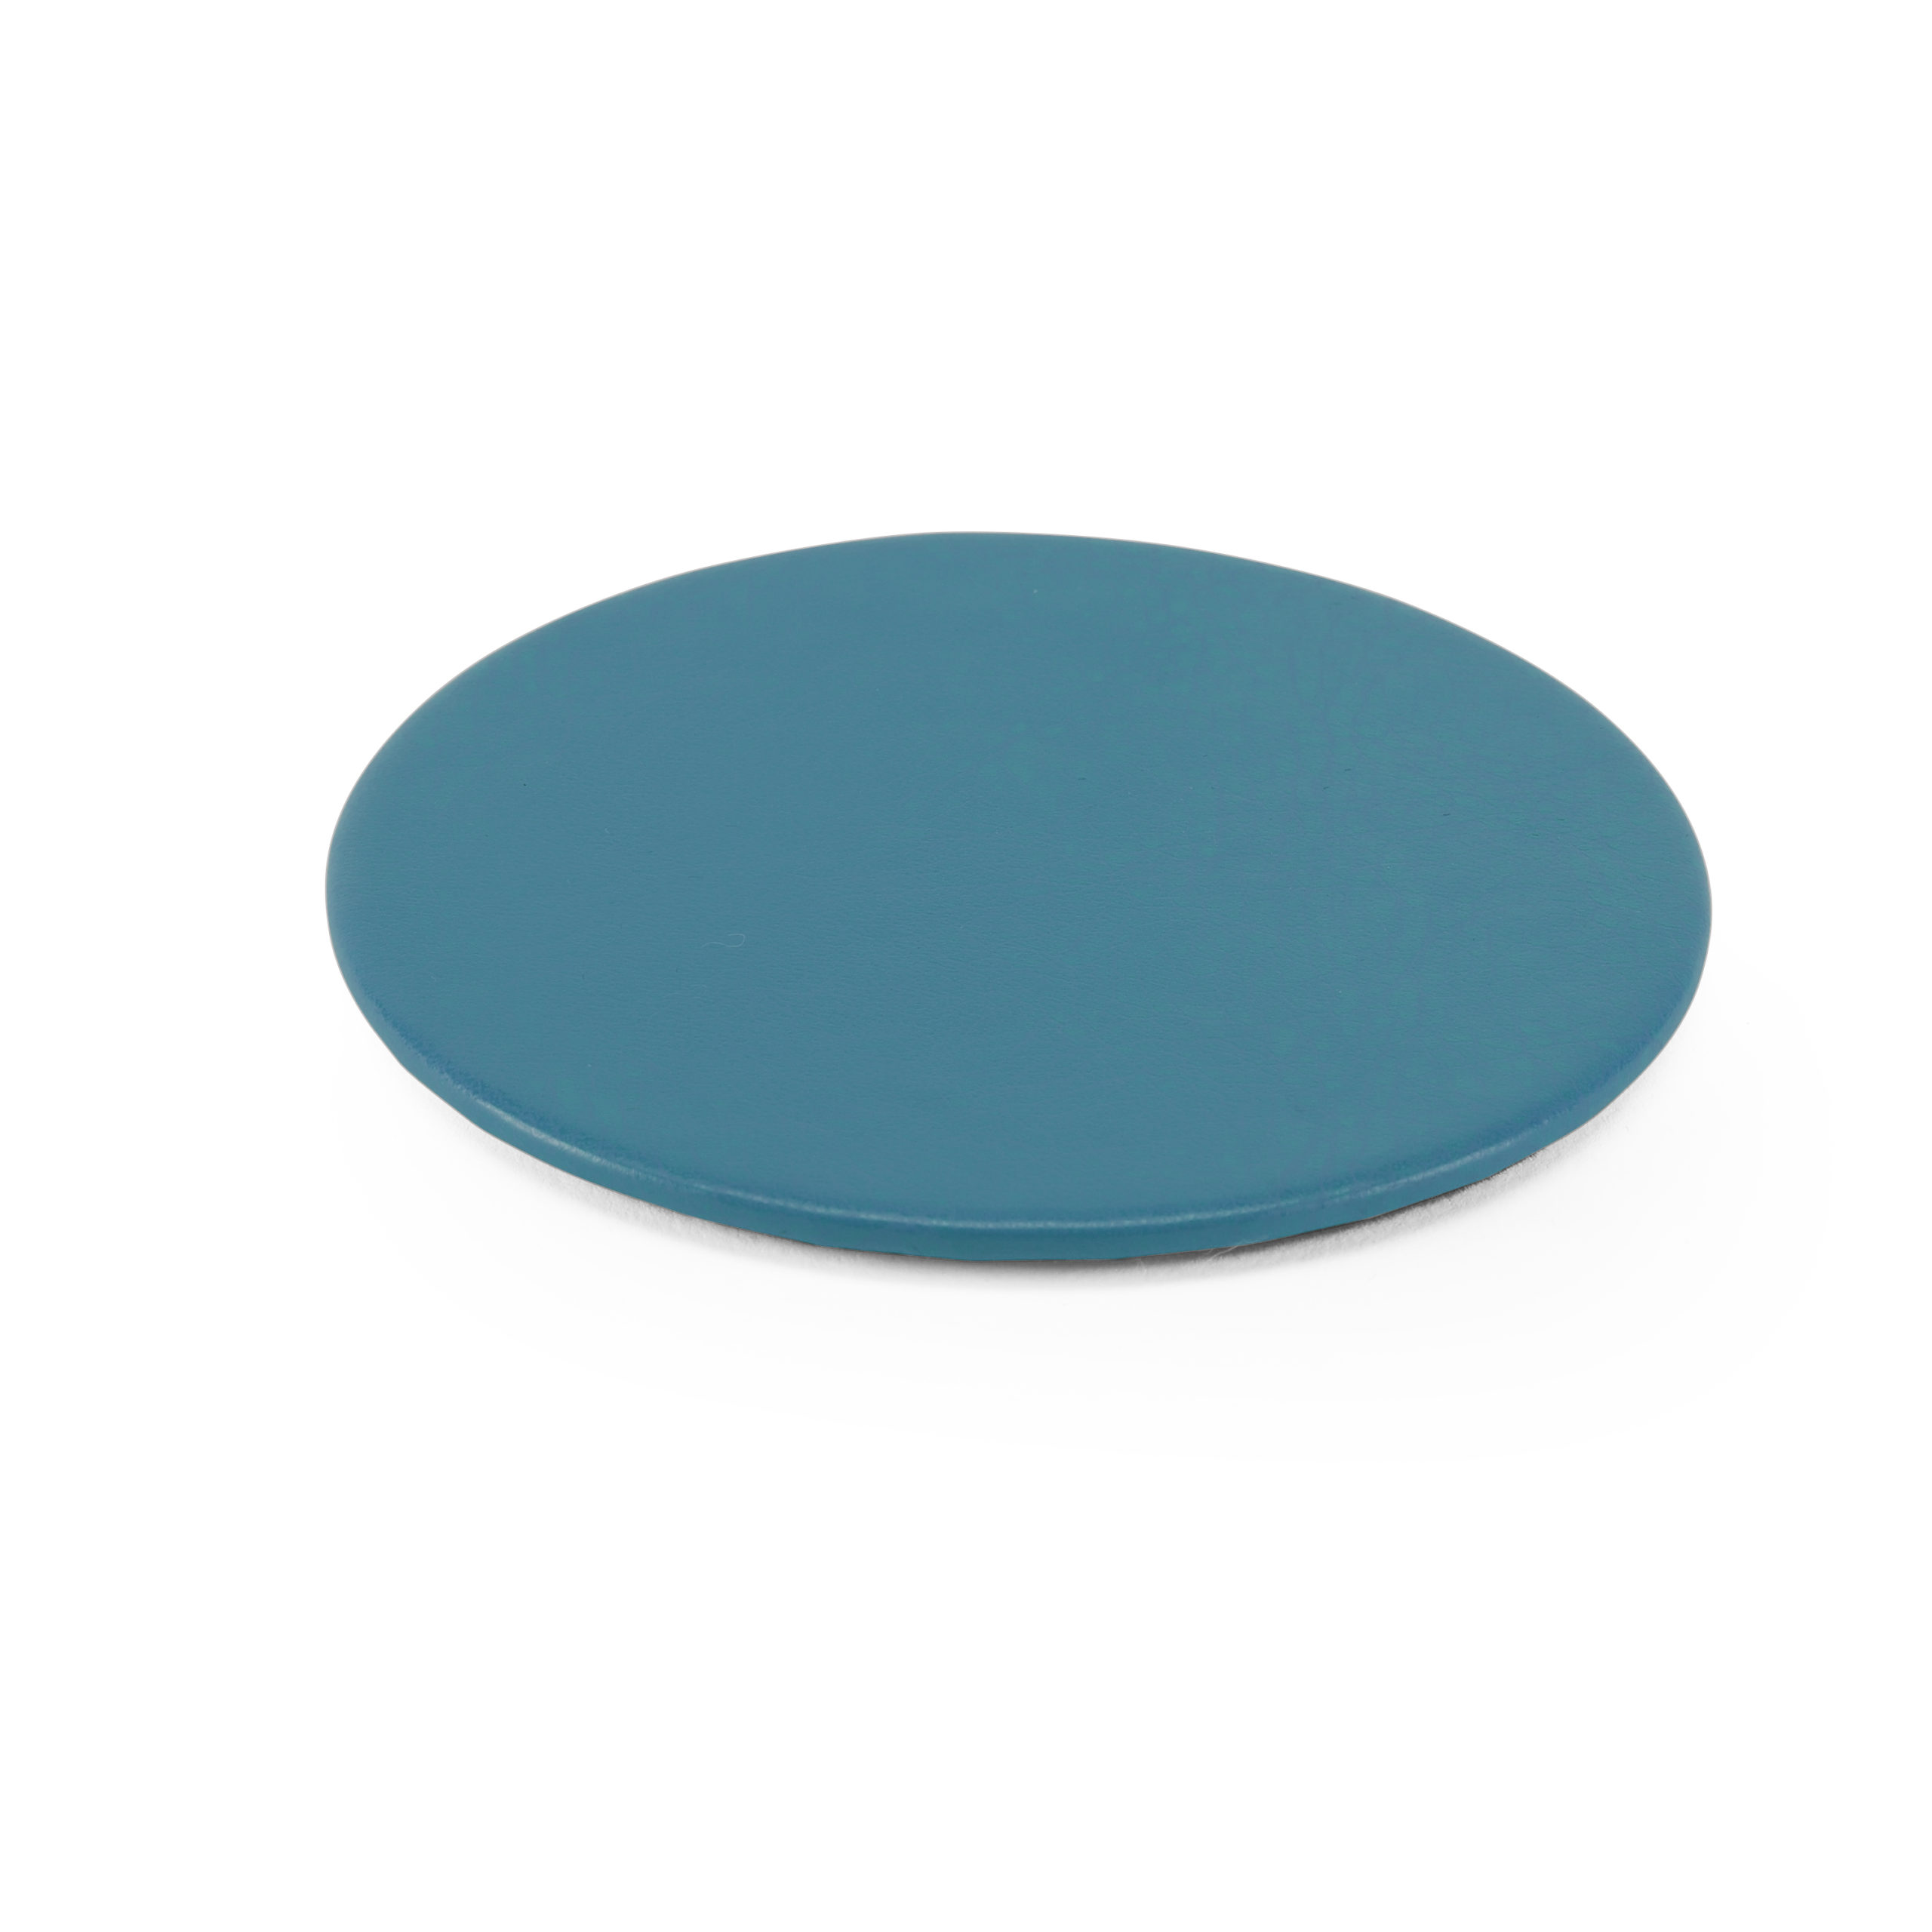 Lifestyle Round Coaster in Sky-Blue